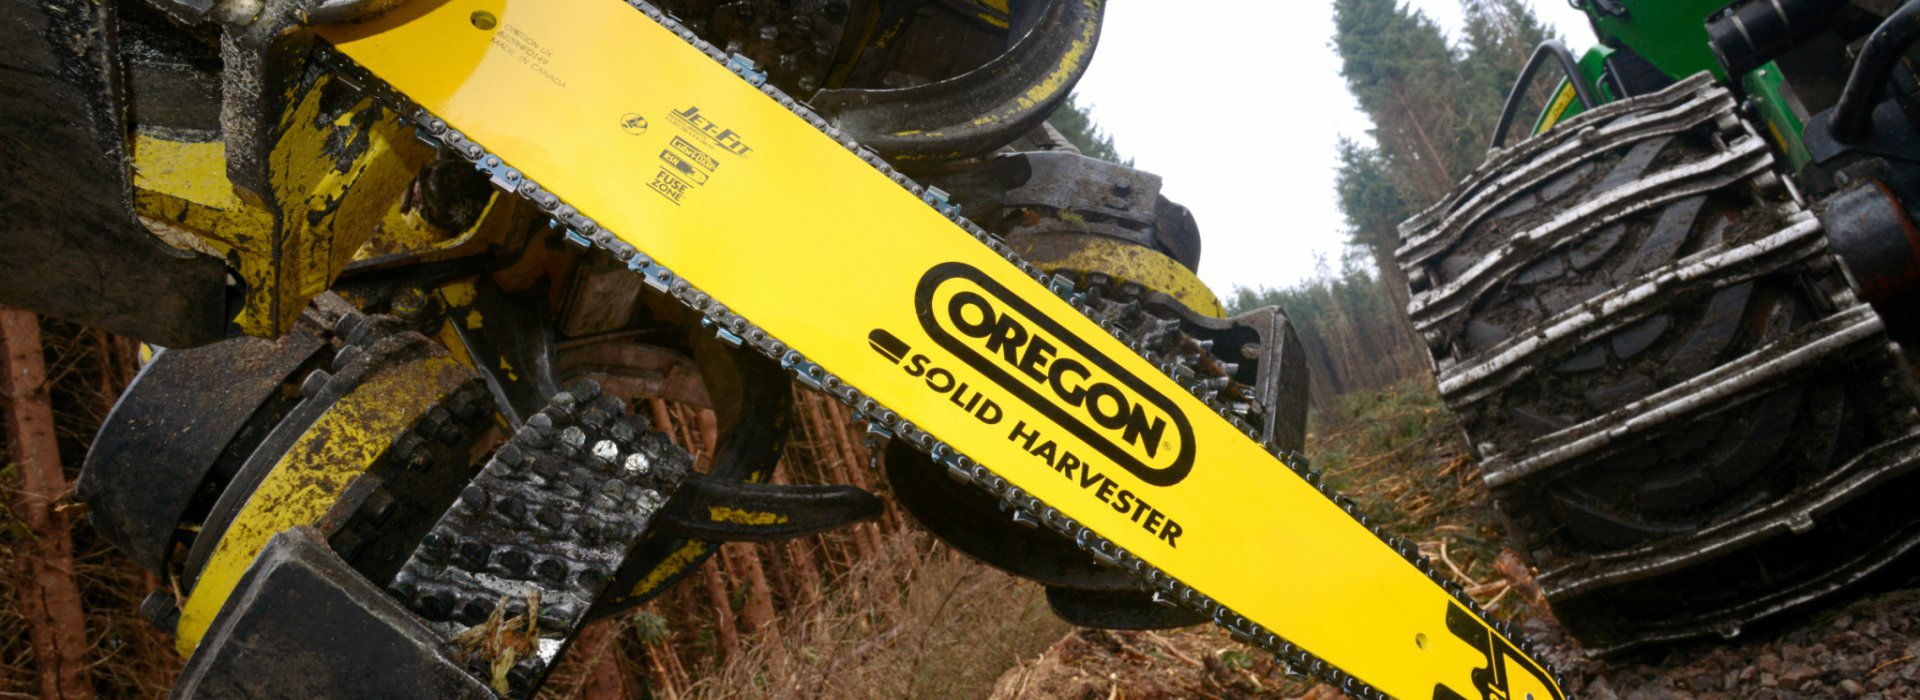 Oregon Harvester Bar Chain Maintenance